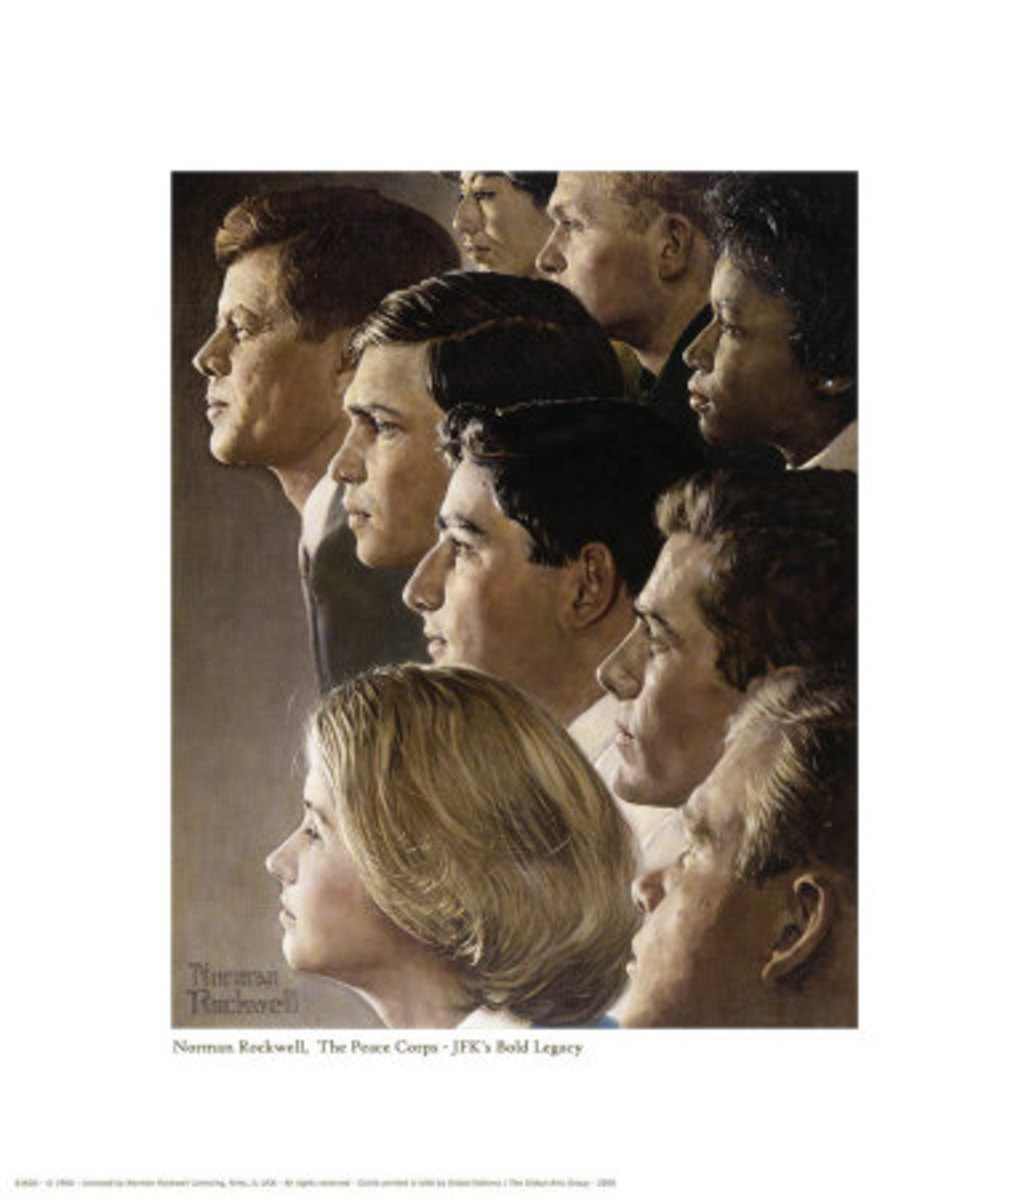 tribute-to-john-f-kennedy-a-leader-for-equal-rights